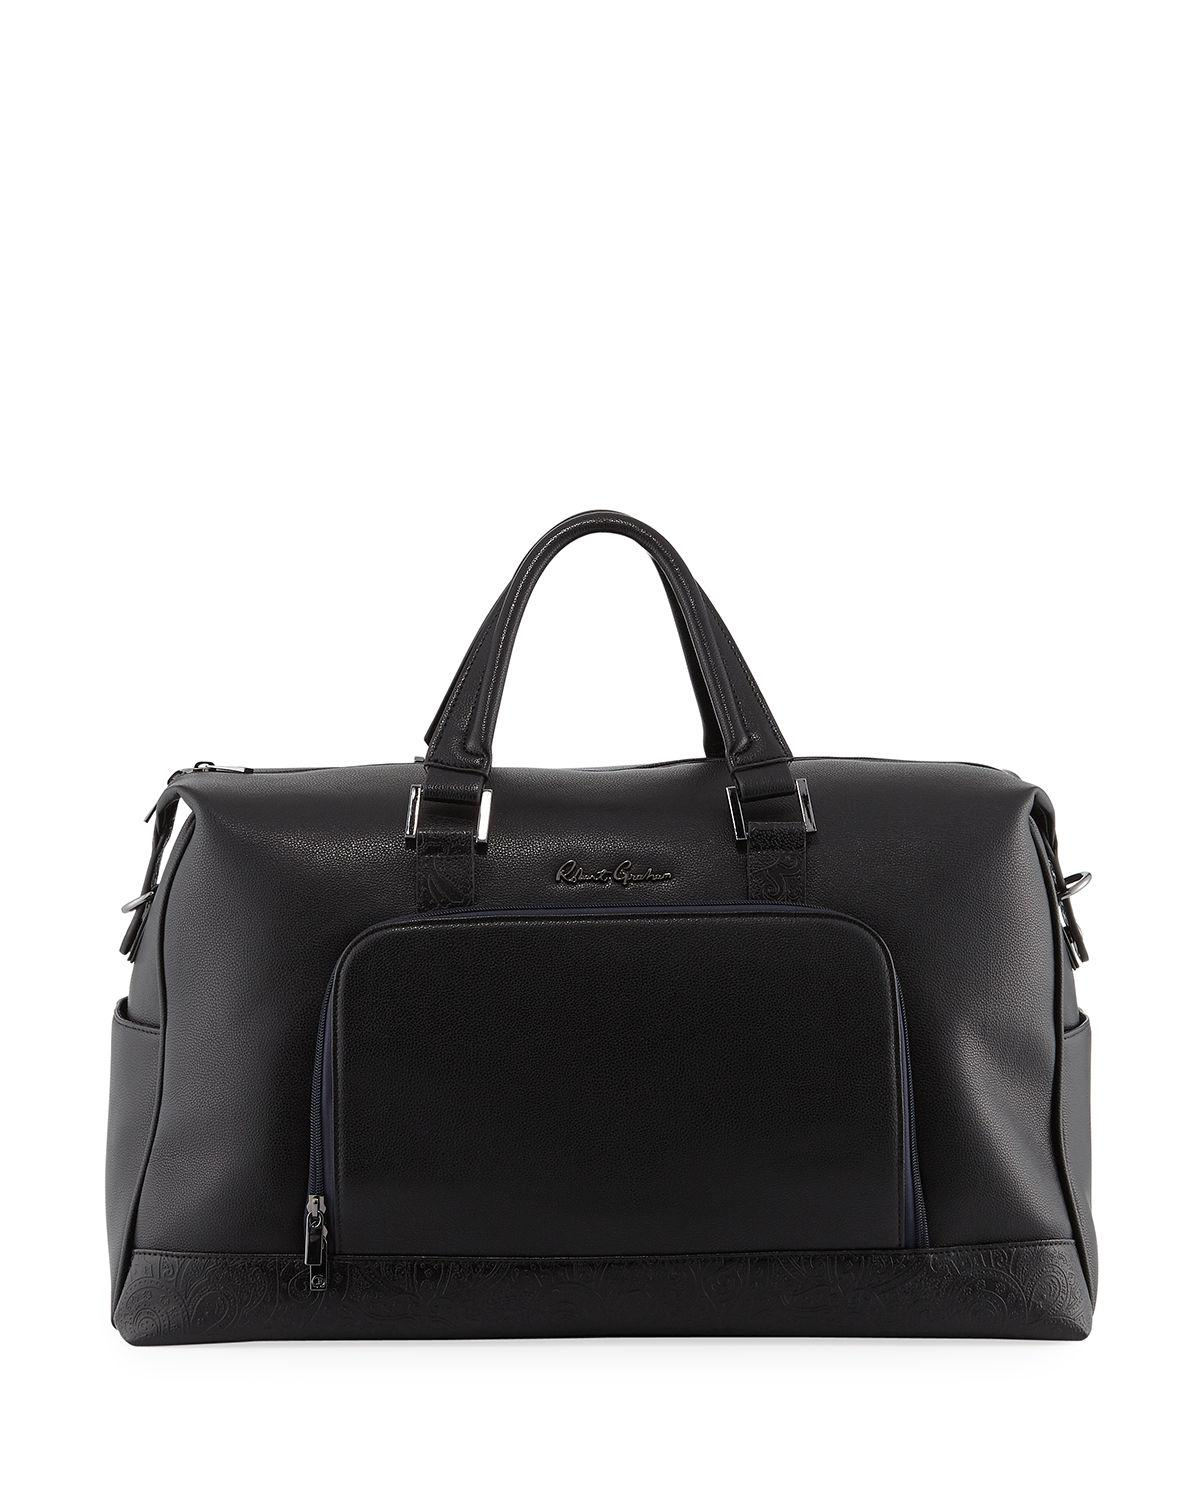 Robert Graham Men's Piro Faux-Leather Weekender Bag In Black